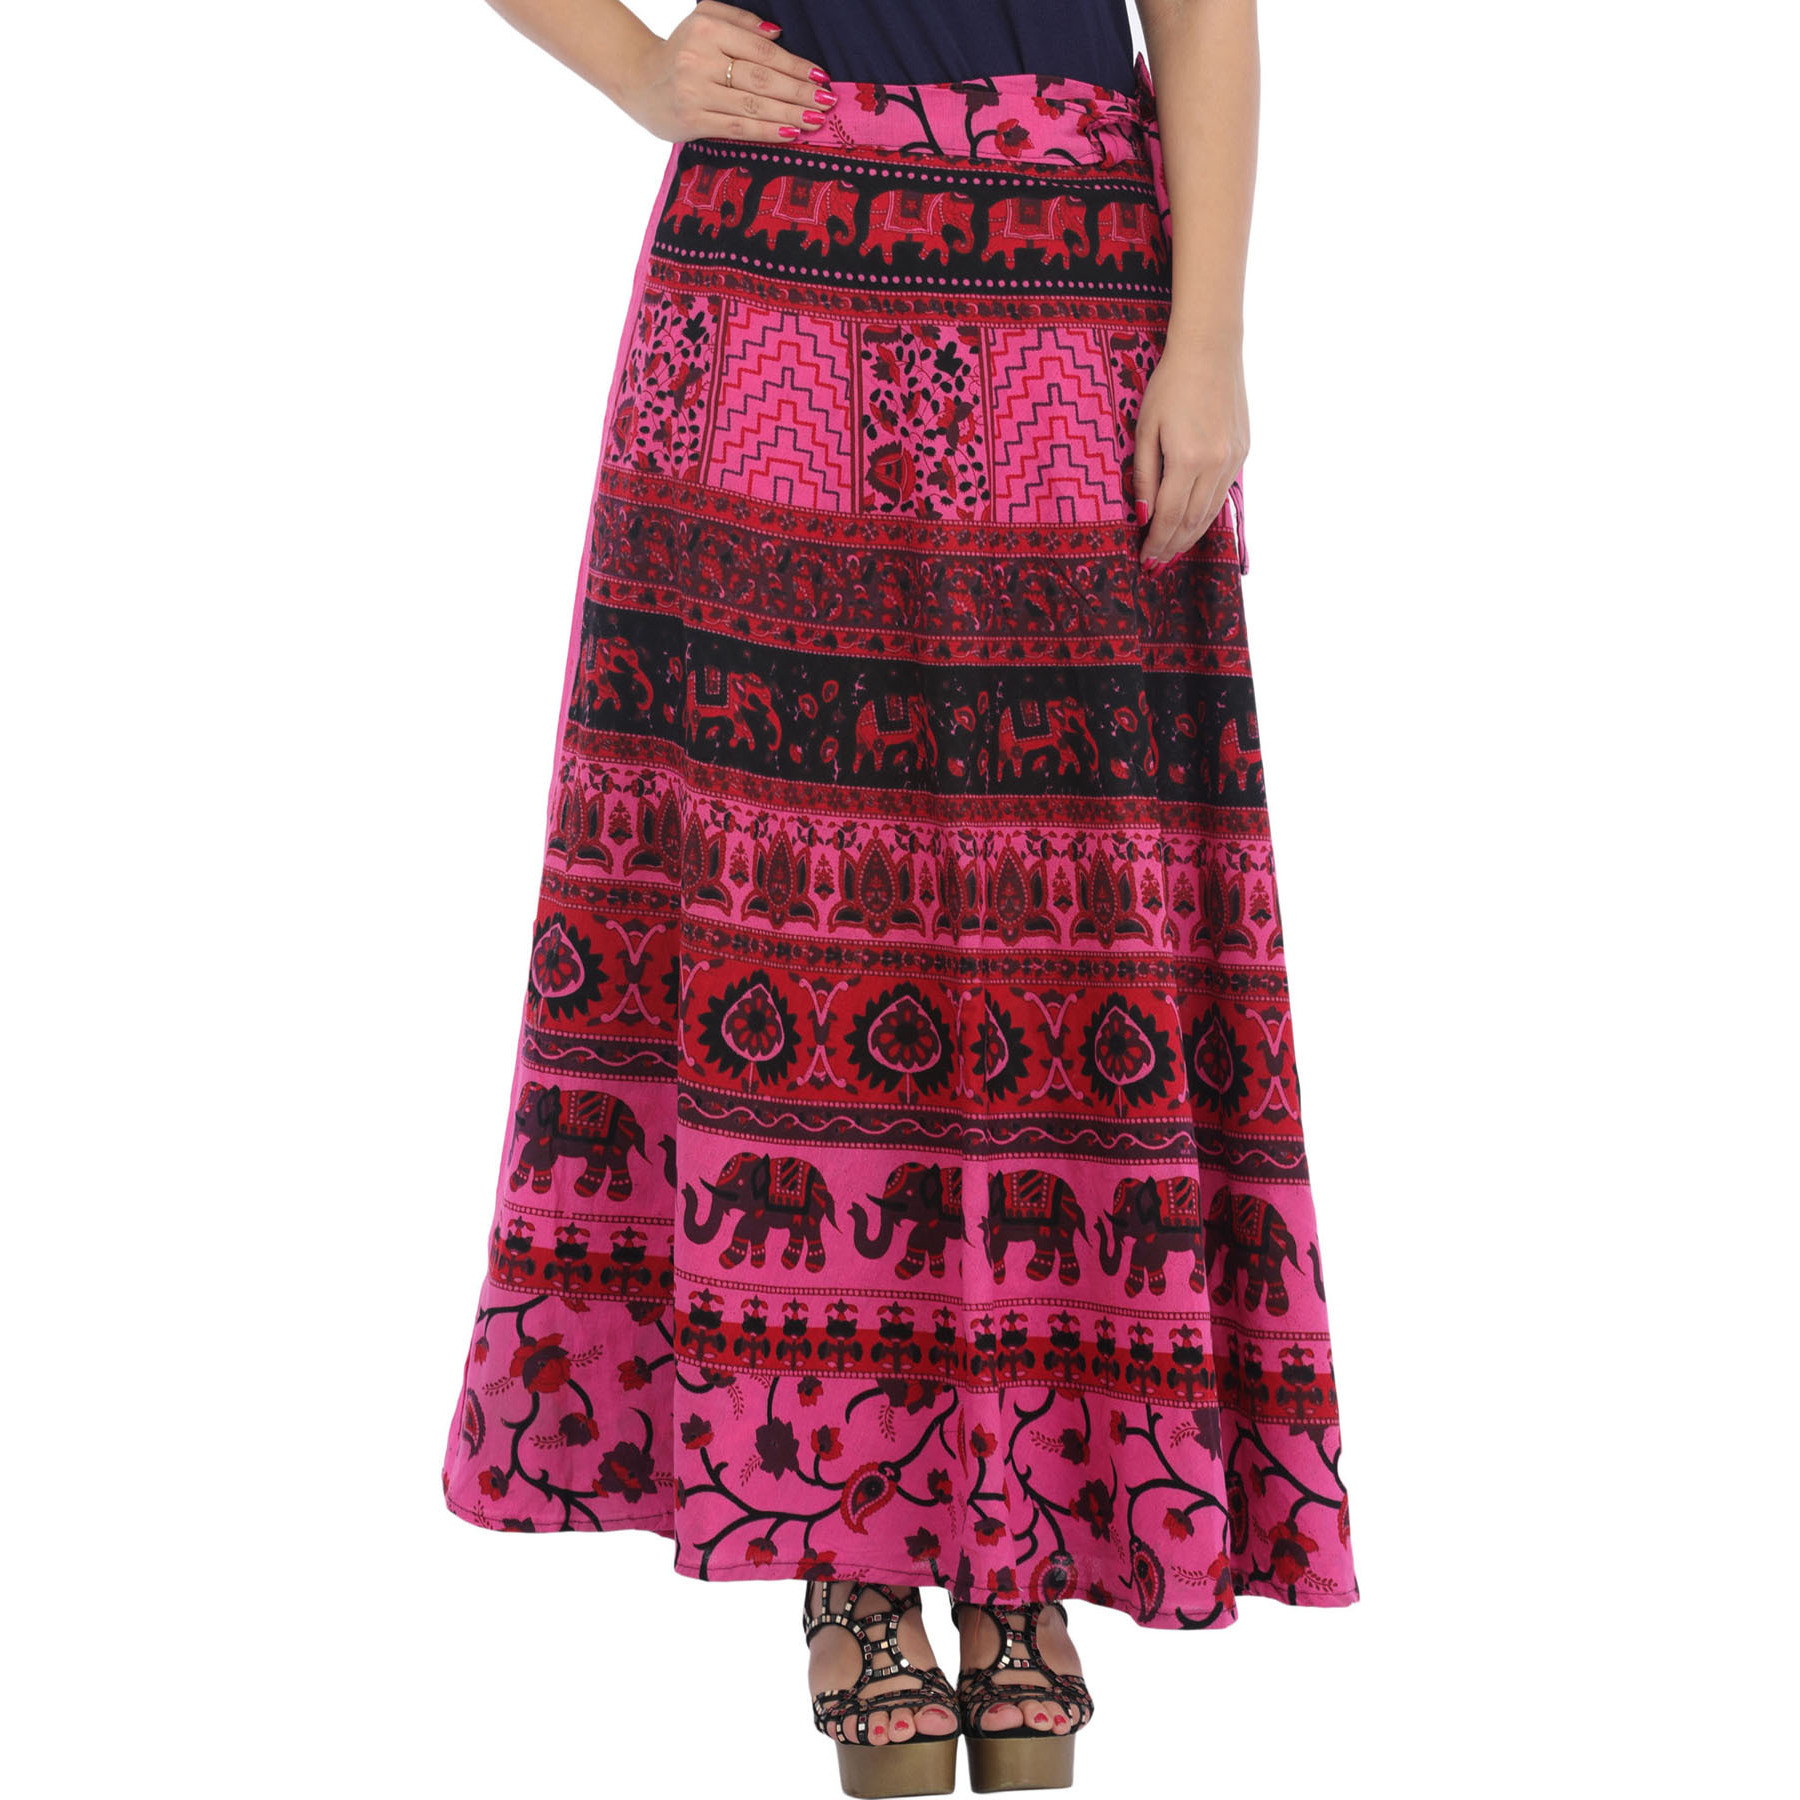 Wrap-Around Long Skirt from Pilkhuwa with Printed Elephants